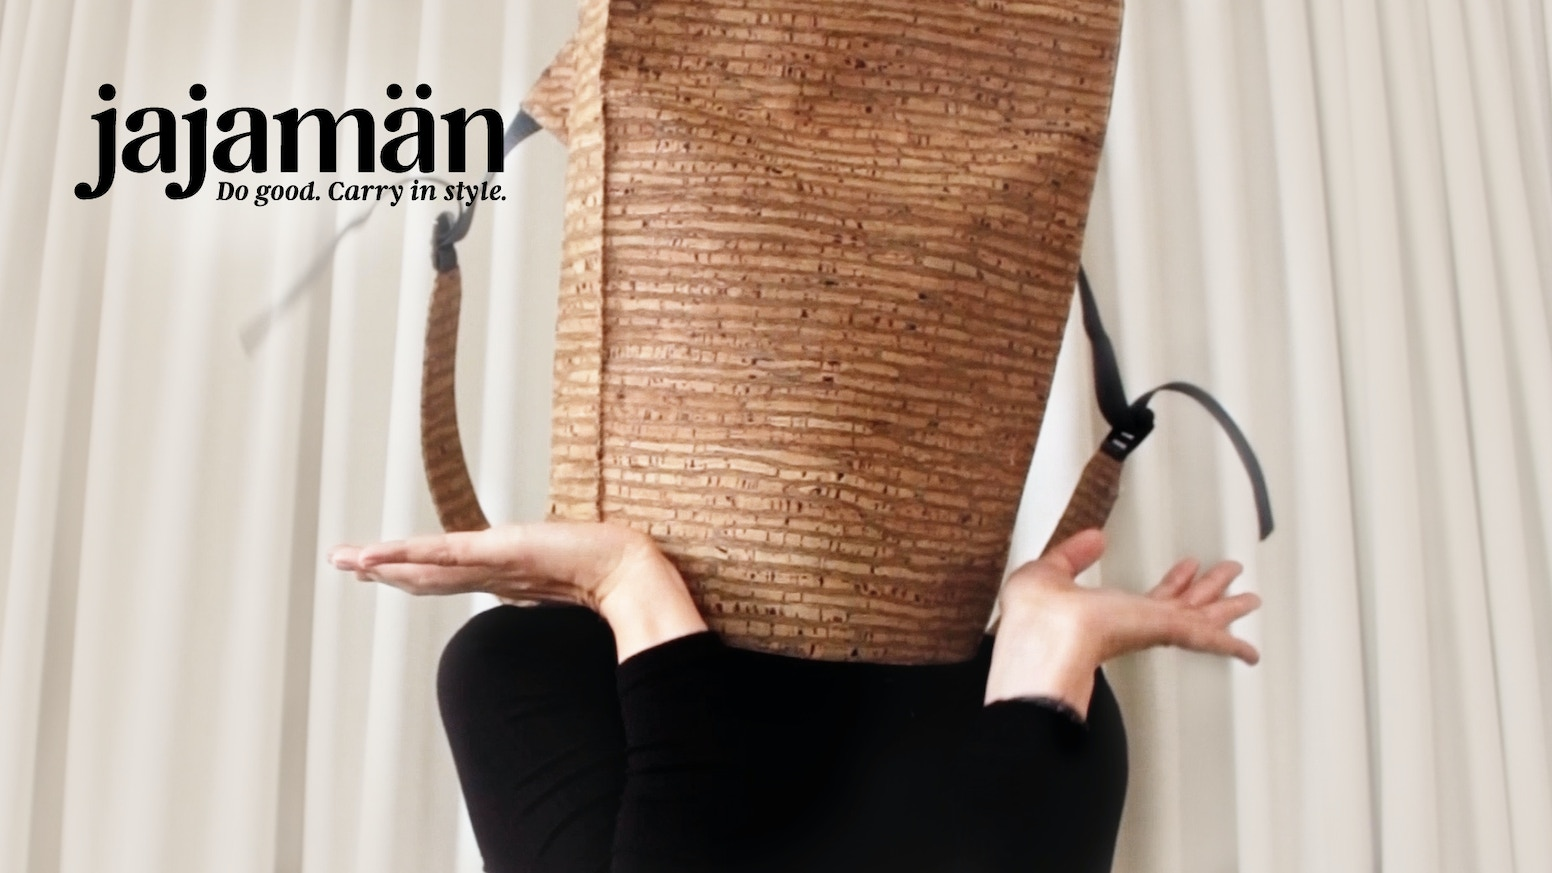 Vegan & Ethically Sourced. The most planet-friendly backpack you'll ever find!